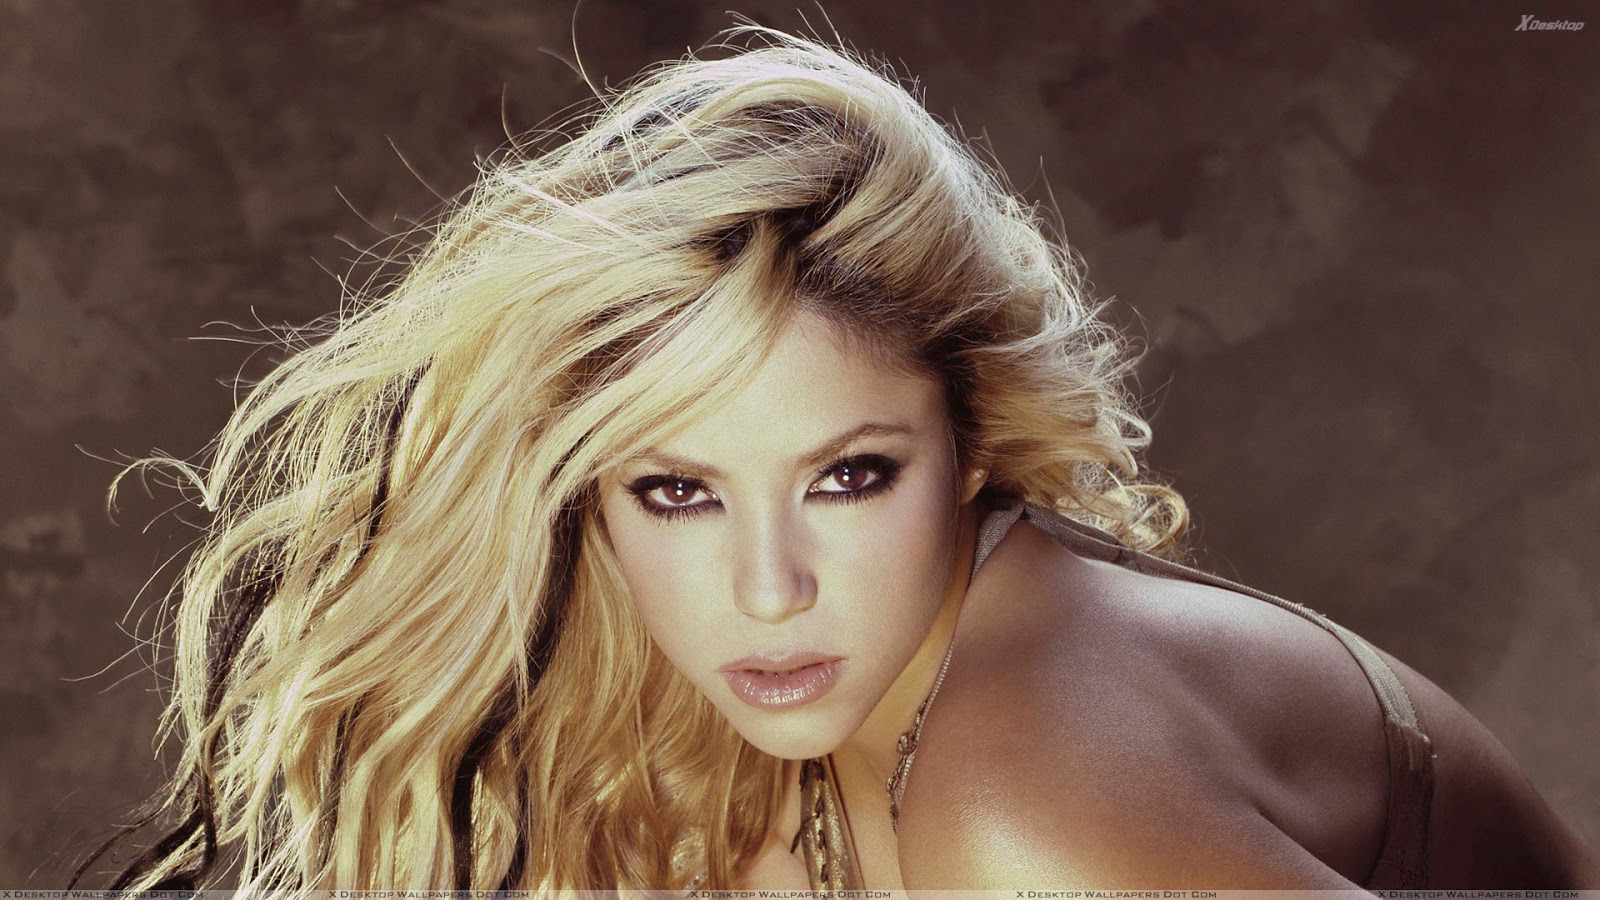 Kissing Girl And Boy Wallpaper Shakira Shakira Photoshoot 2012